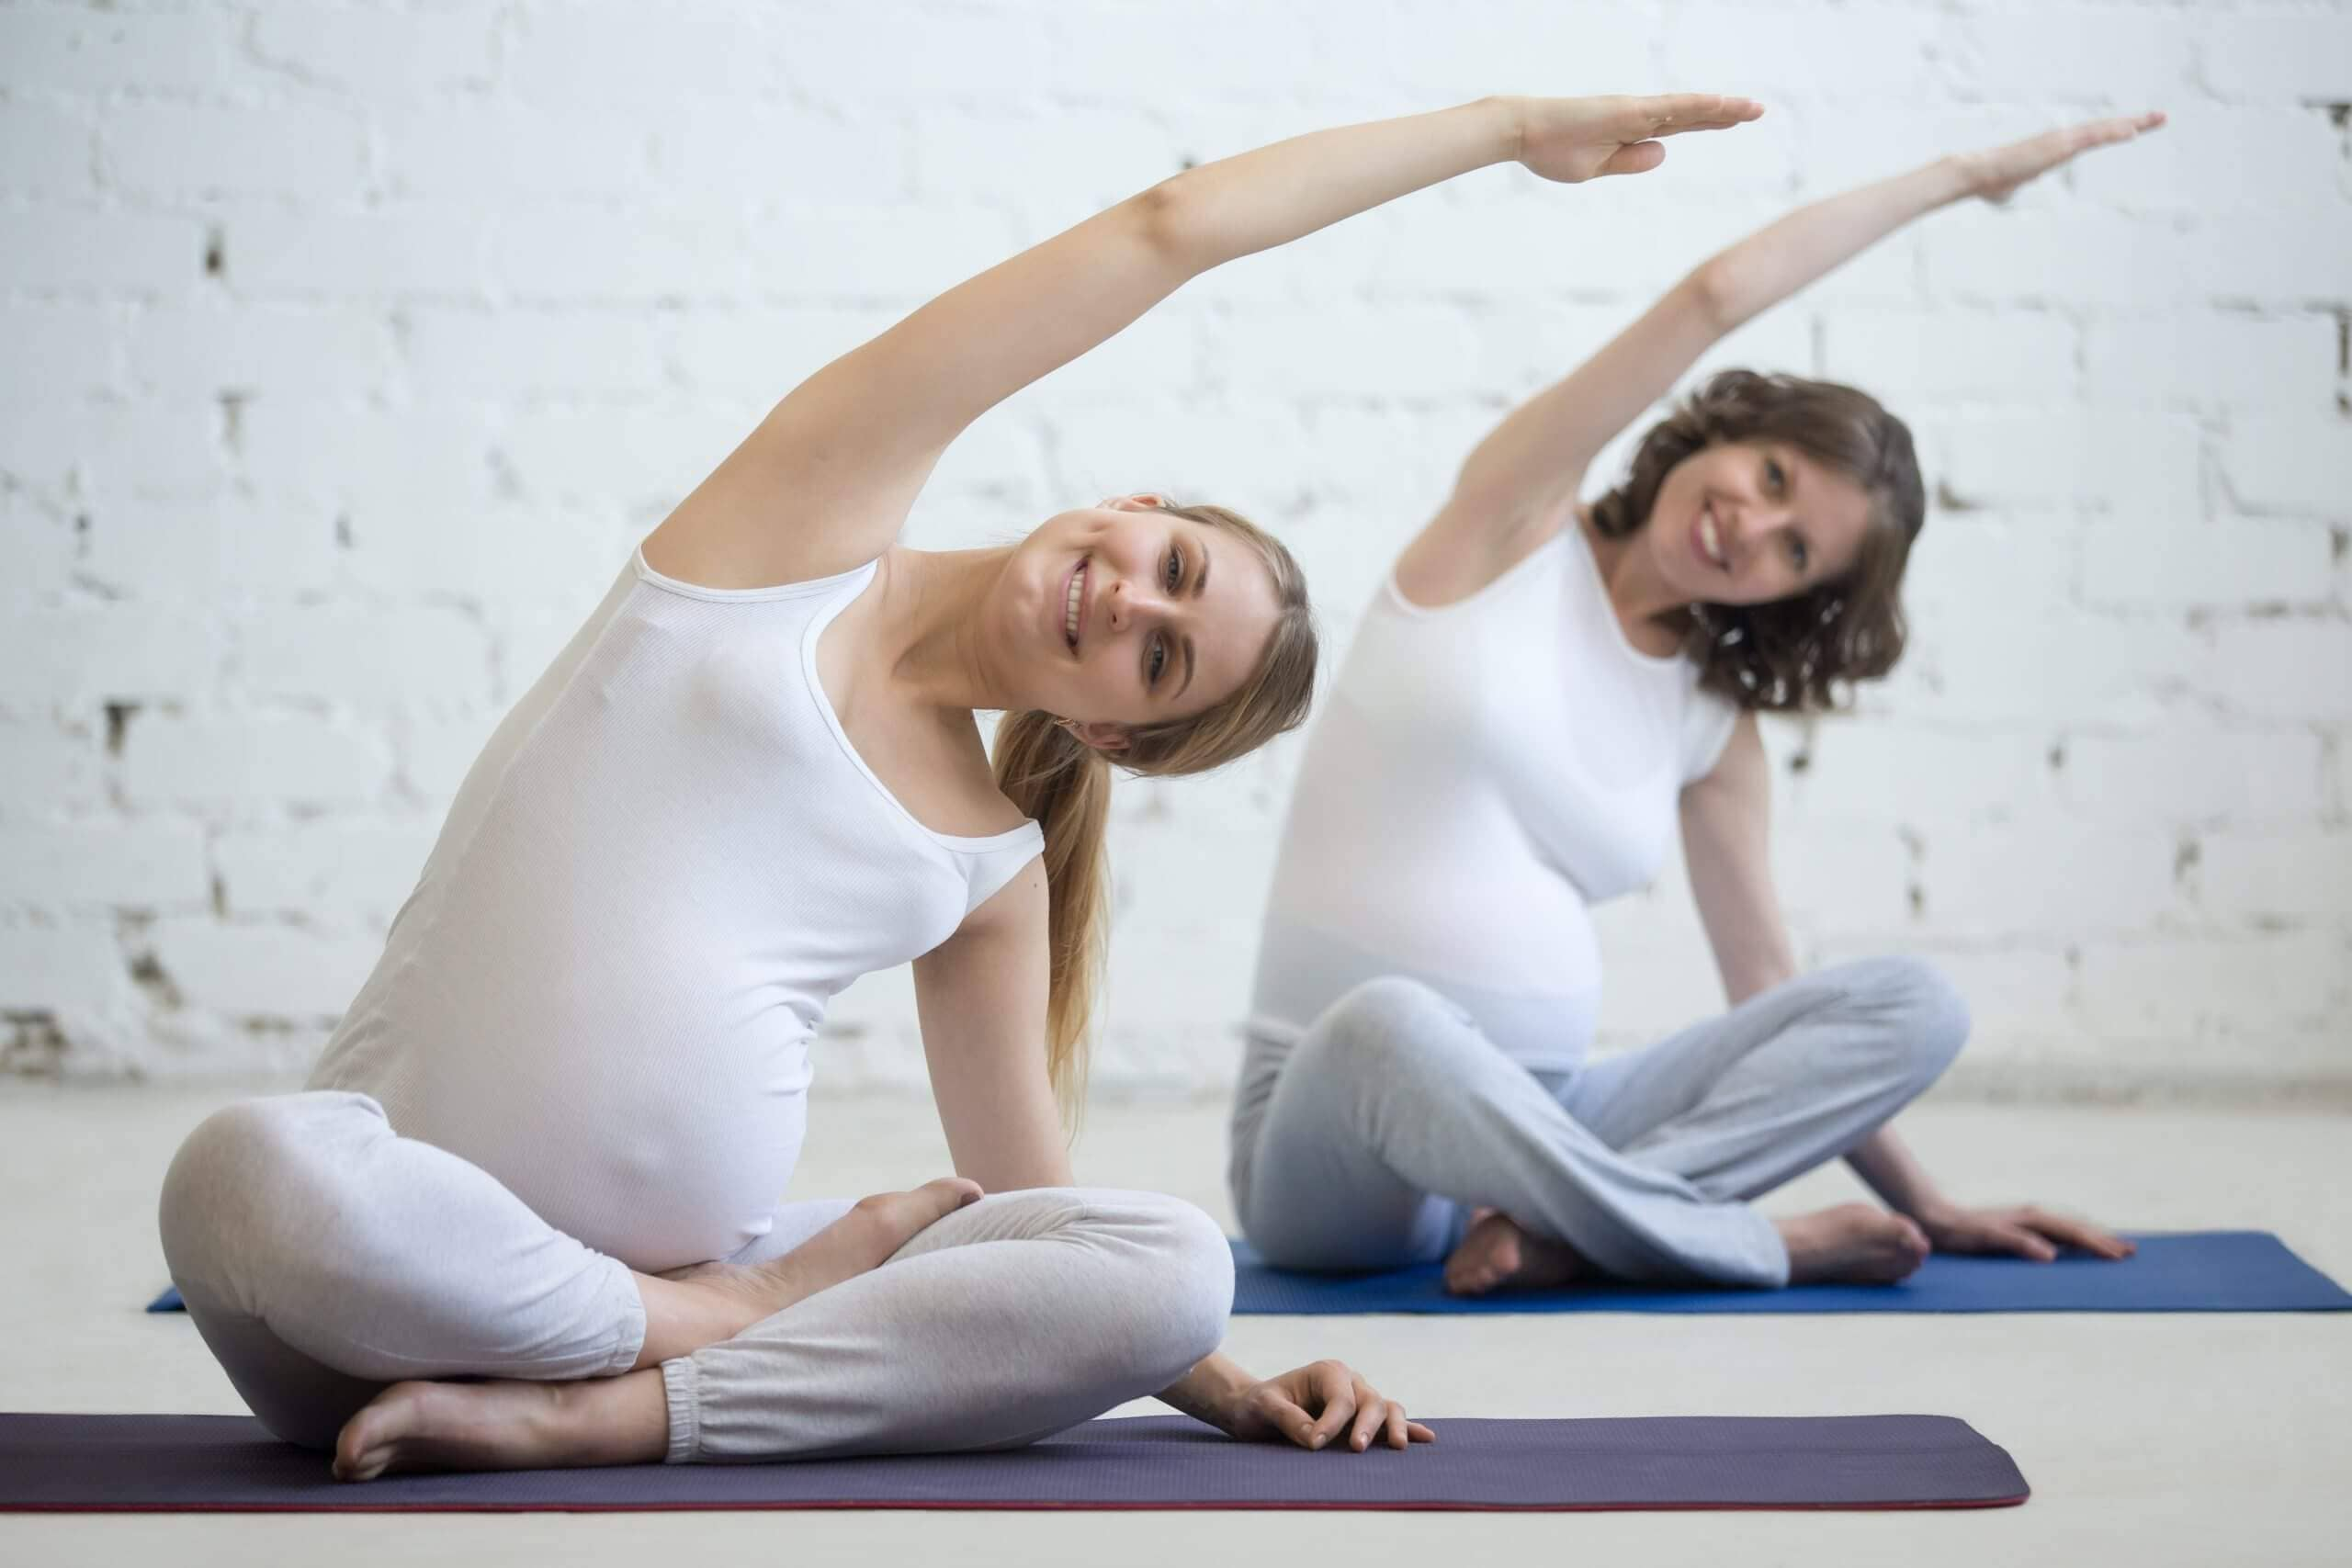 Pregnancy Yoga, Fitness concept. Two beautiful young pregnant yoga models working out indoor. Pregnant smiling fitness women sitting in yogic cross-legged pose at class. Prenatal sidebend in Easy Pose